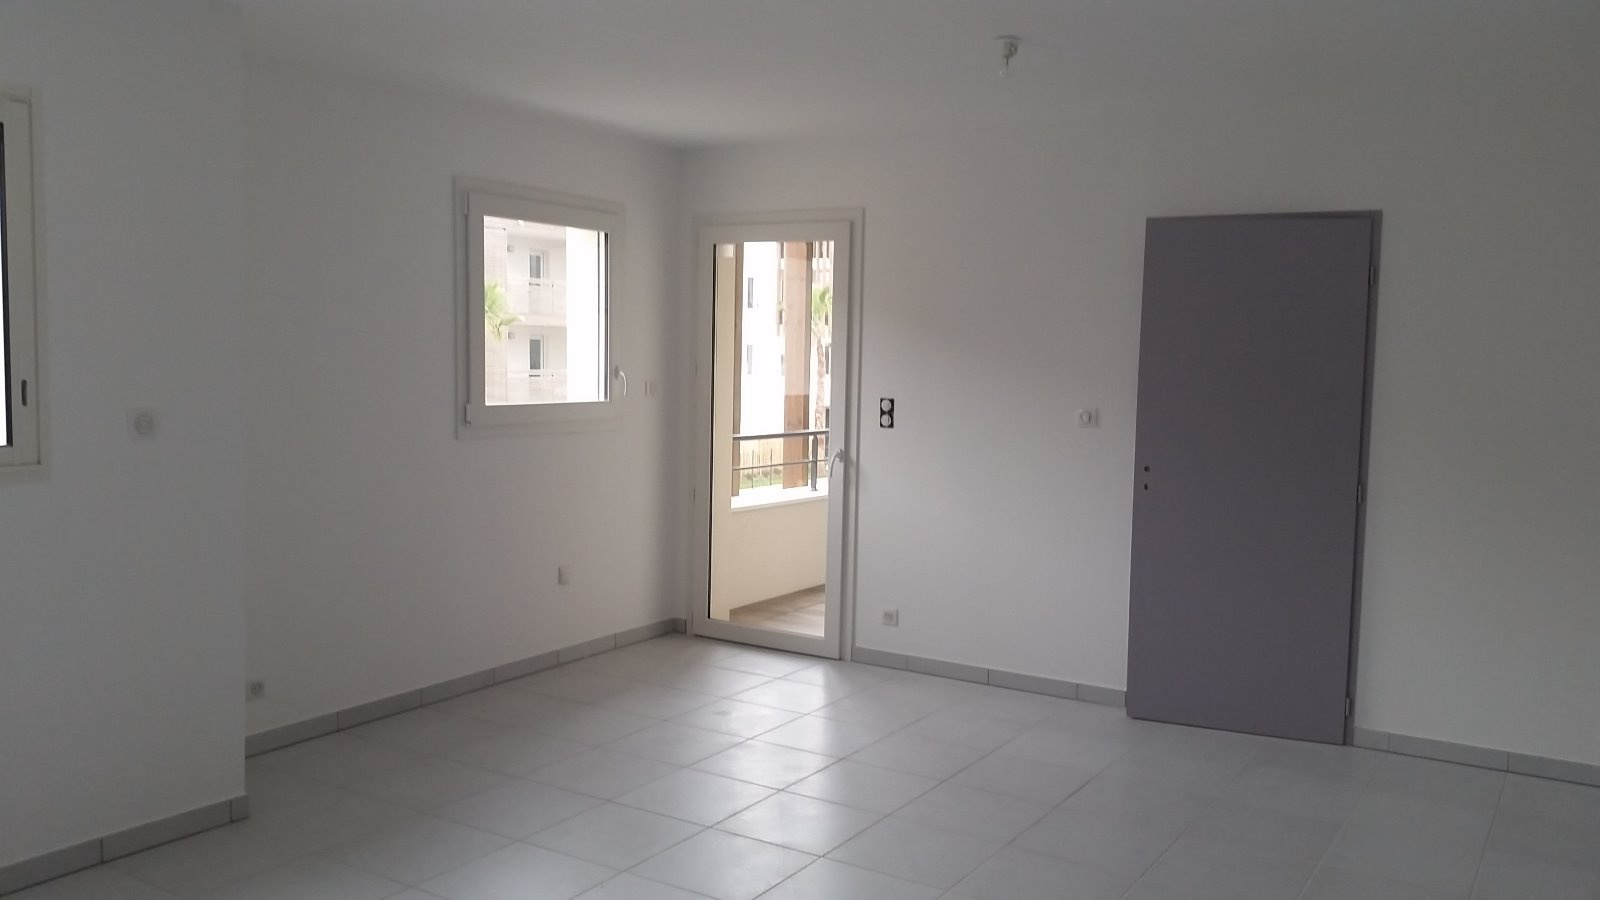 Vente baillargues appartement t3 63 m neuf for Appartement t3 neuf